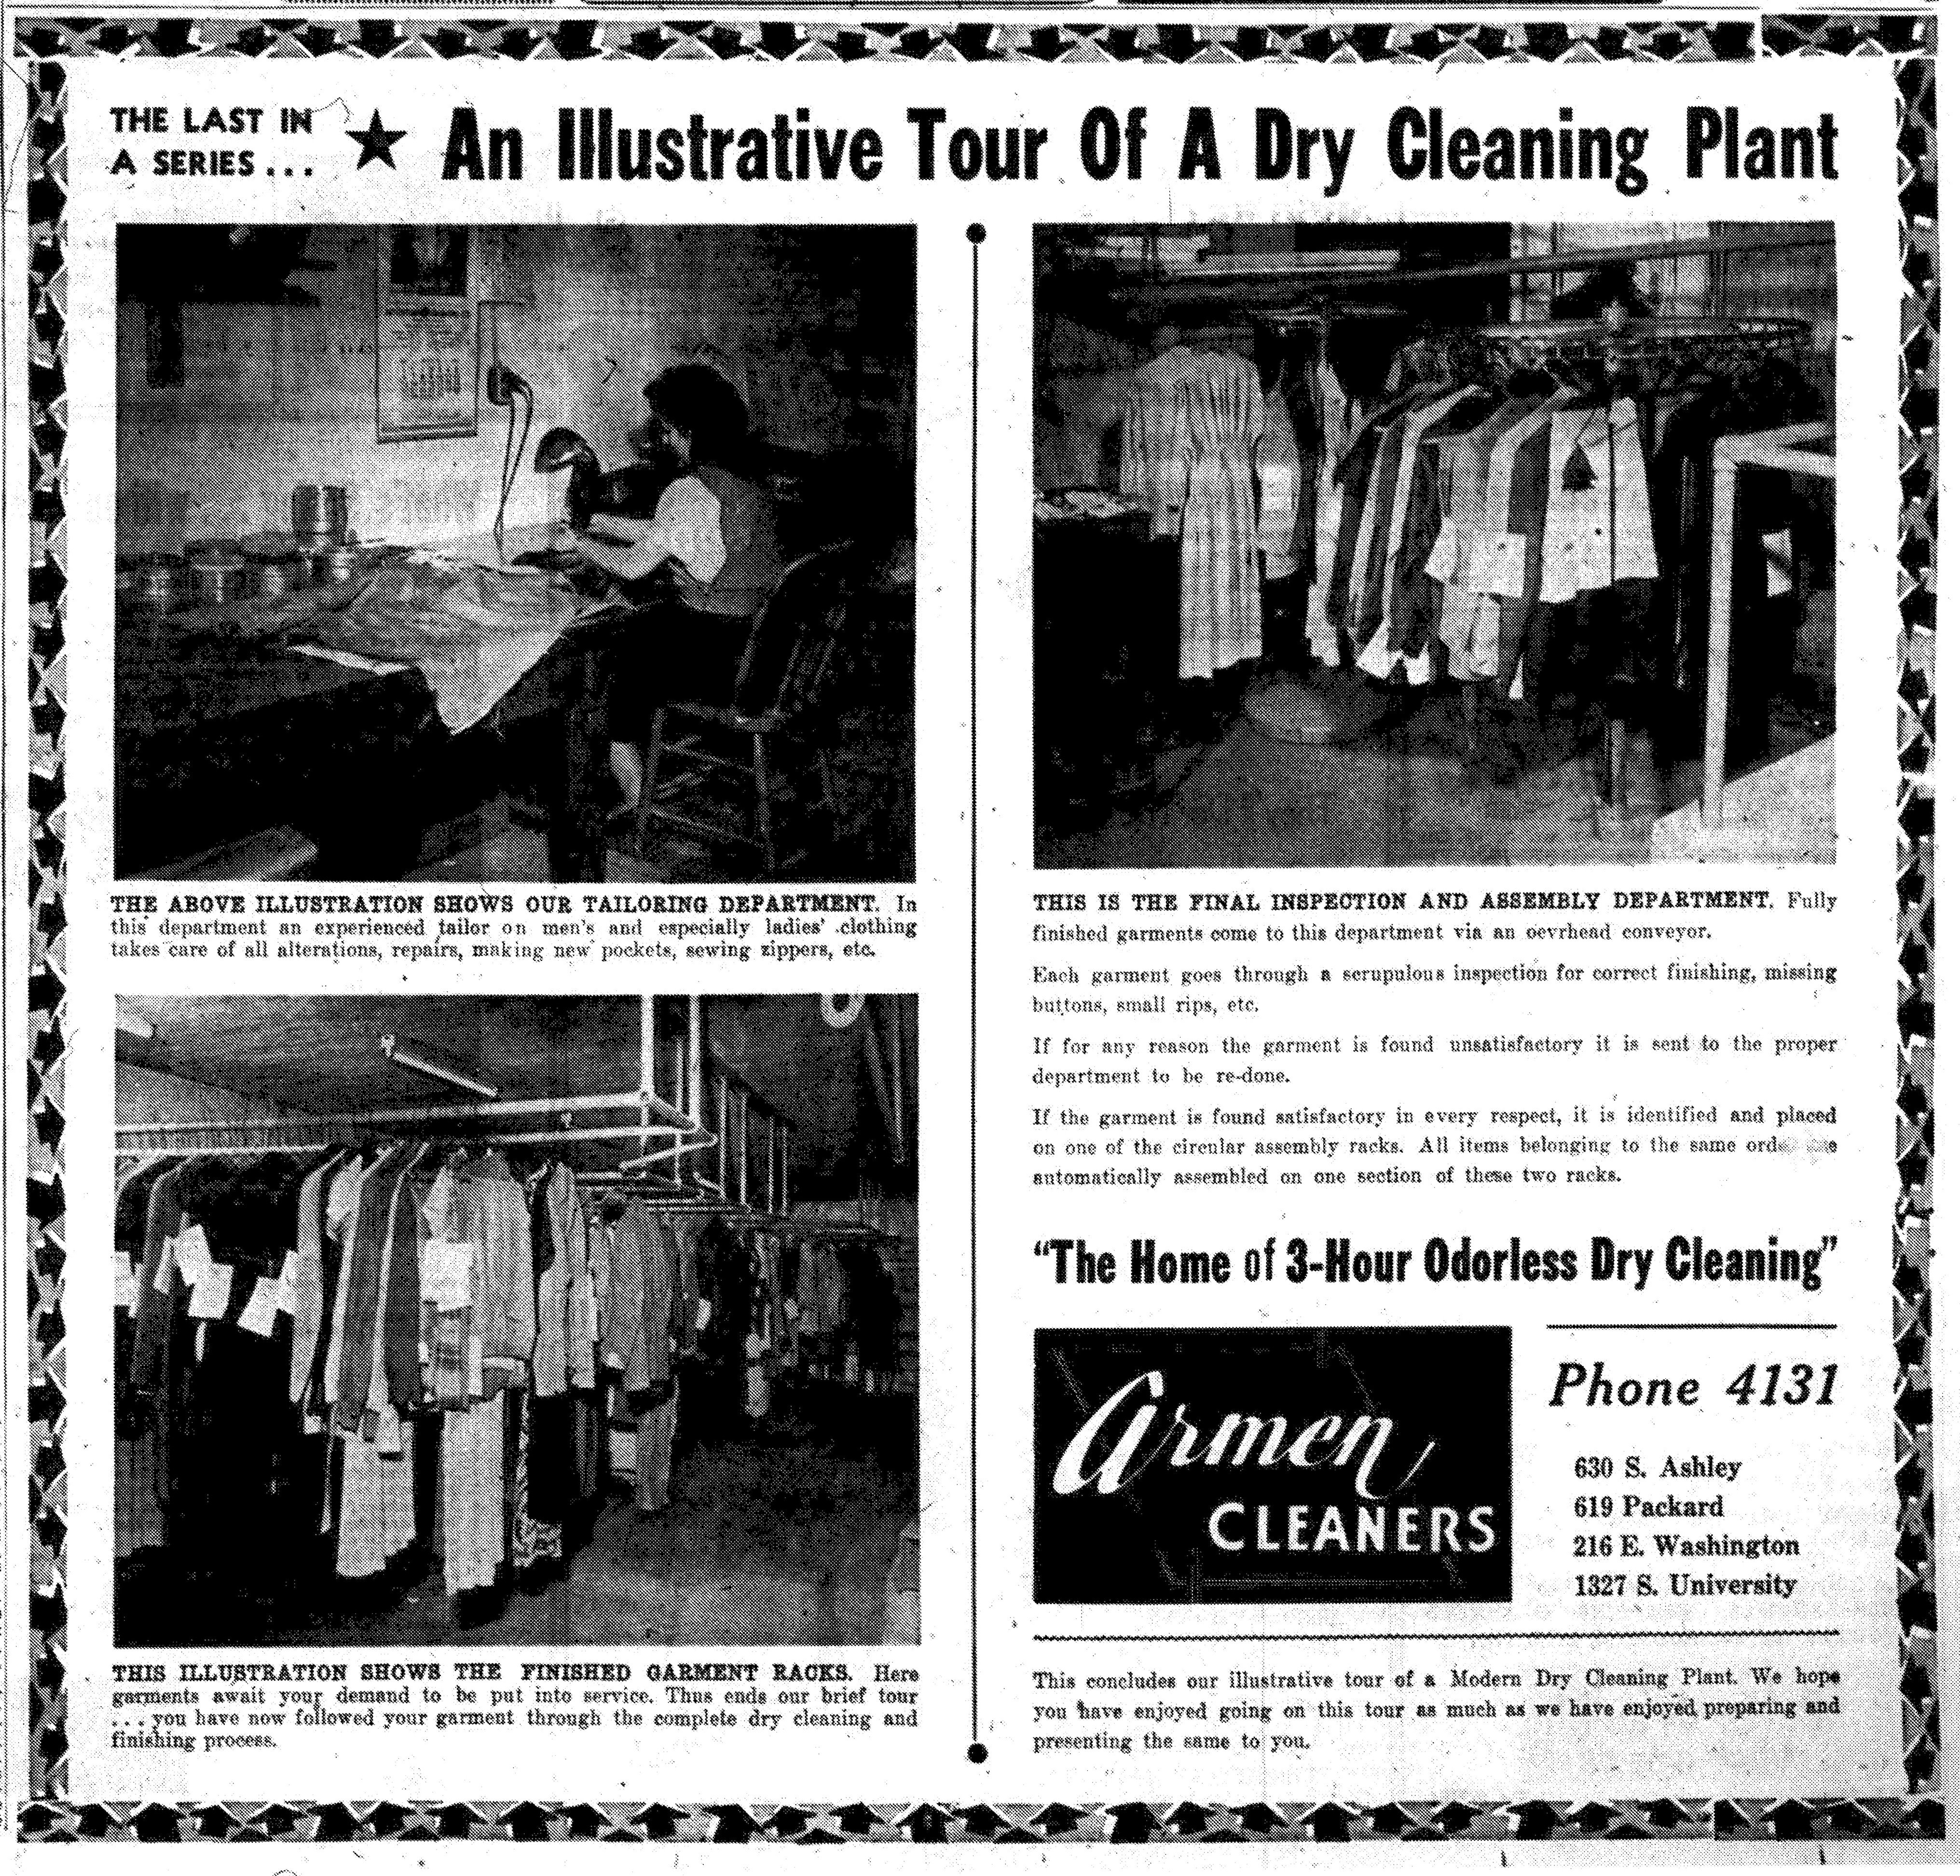 An Illustrative Tour Of A Dry Cleaning Plant No 7 Armen Cleaners Ann Arbor District Library